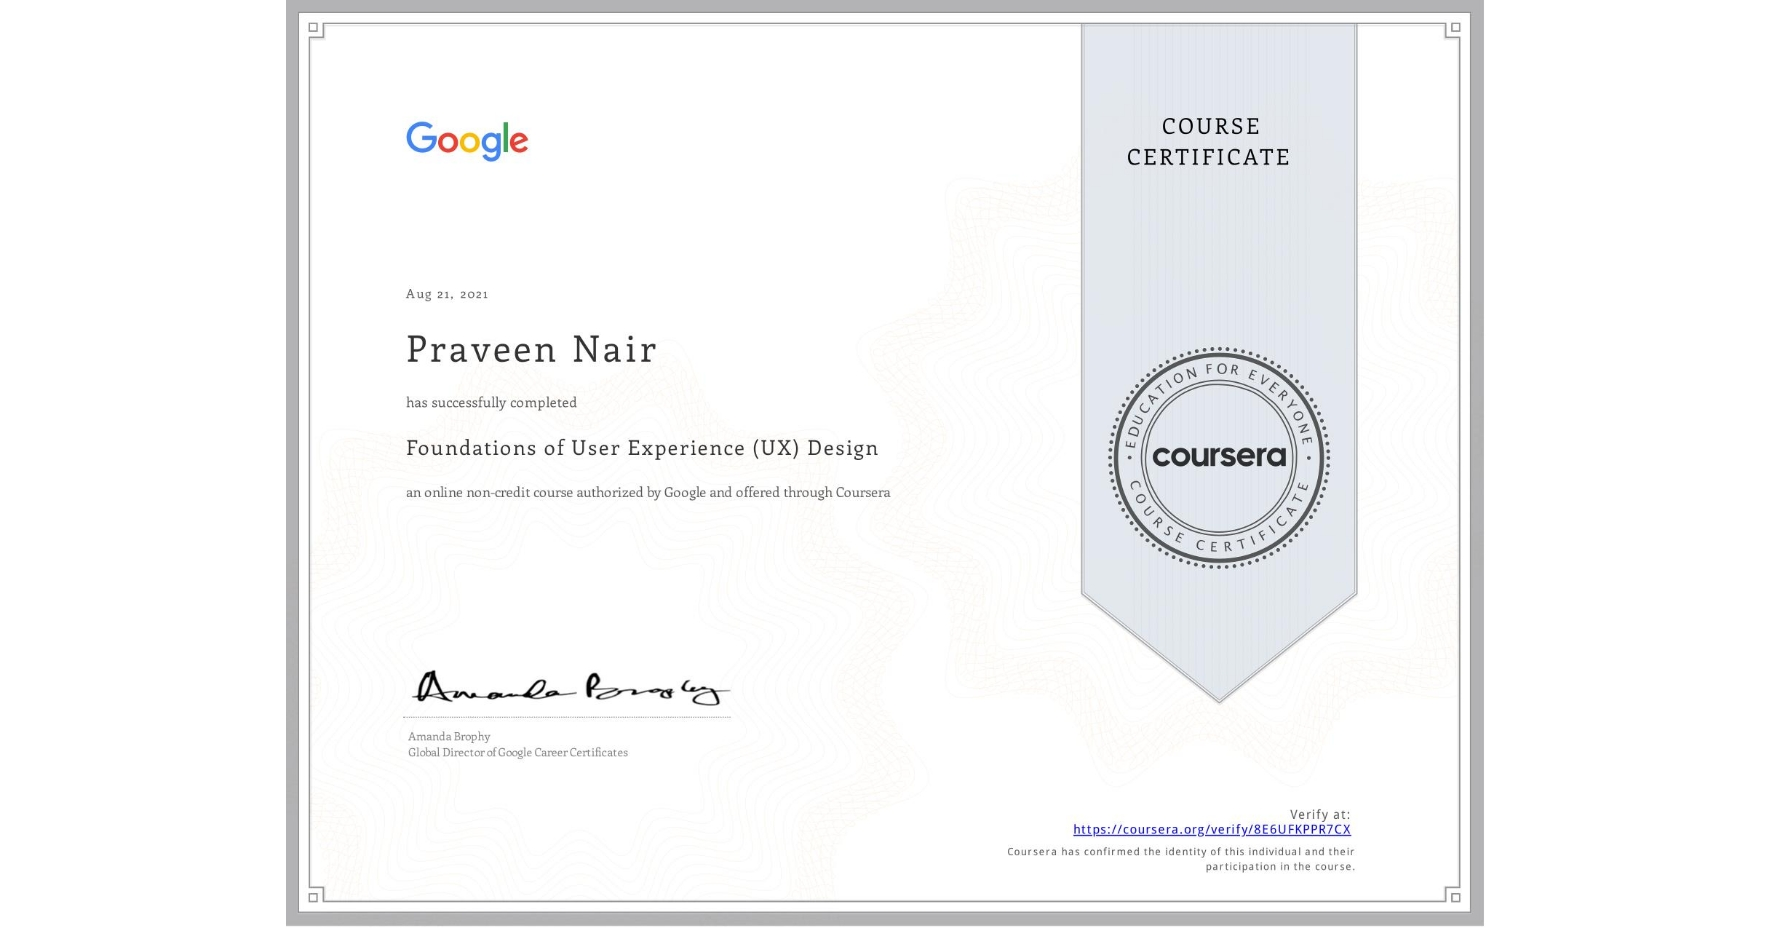 View certificate for Praveen Nair, Foundations of User Experience (UX) Design, an online non-credit course authorized by Google and offered through Coursera